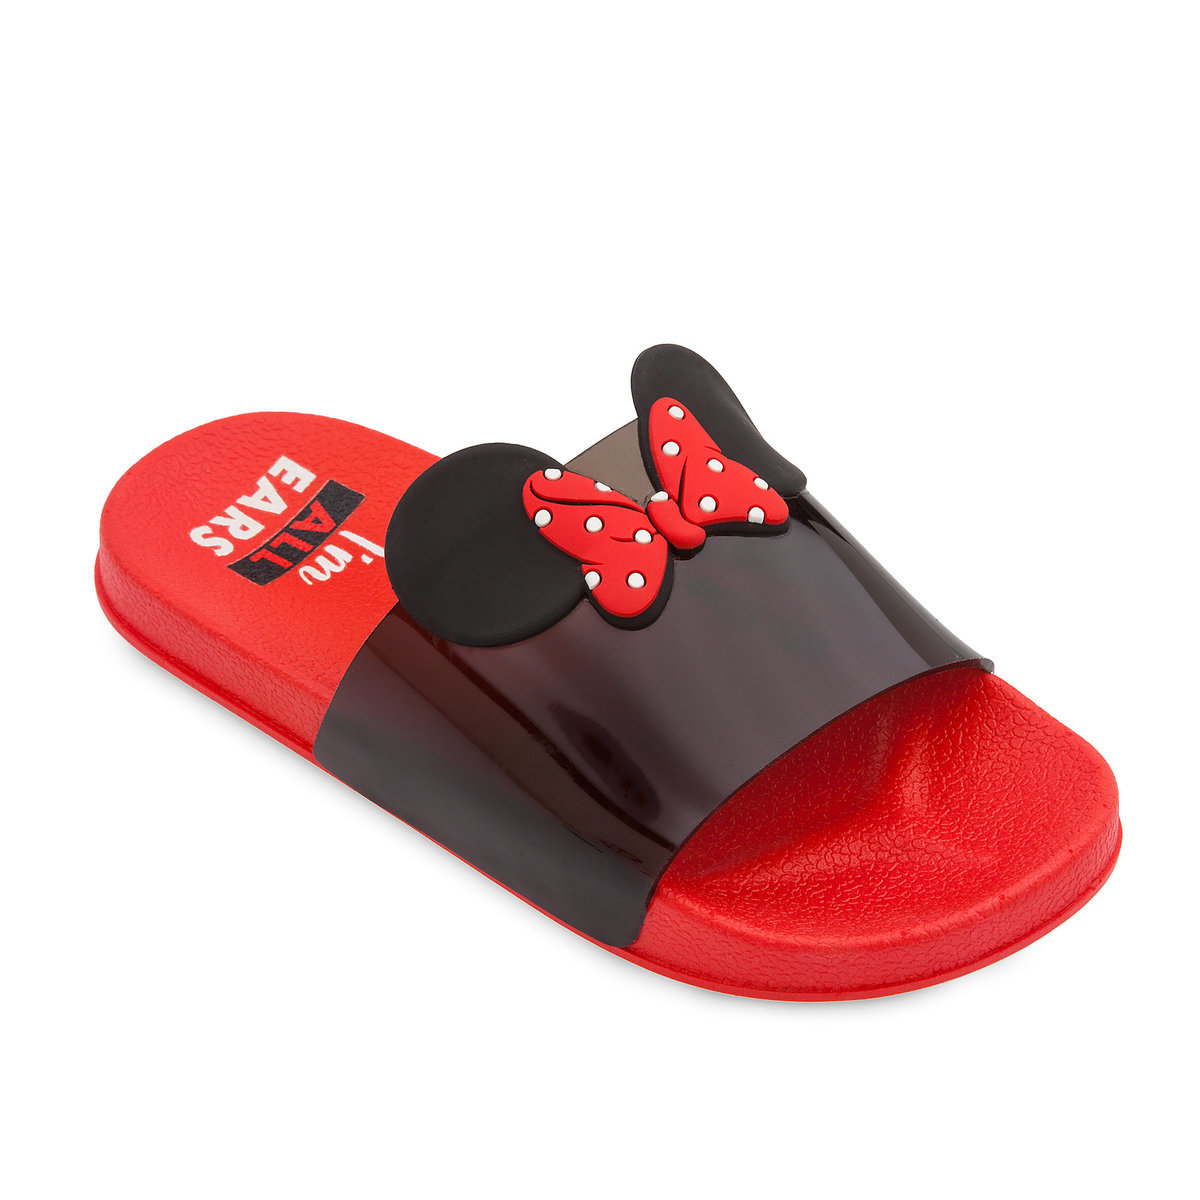 74c5f314c948 Product Image of Minnie Mouse Slides for Kids - Red   1